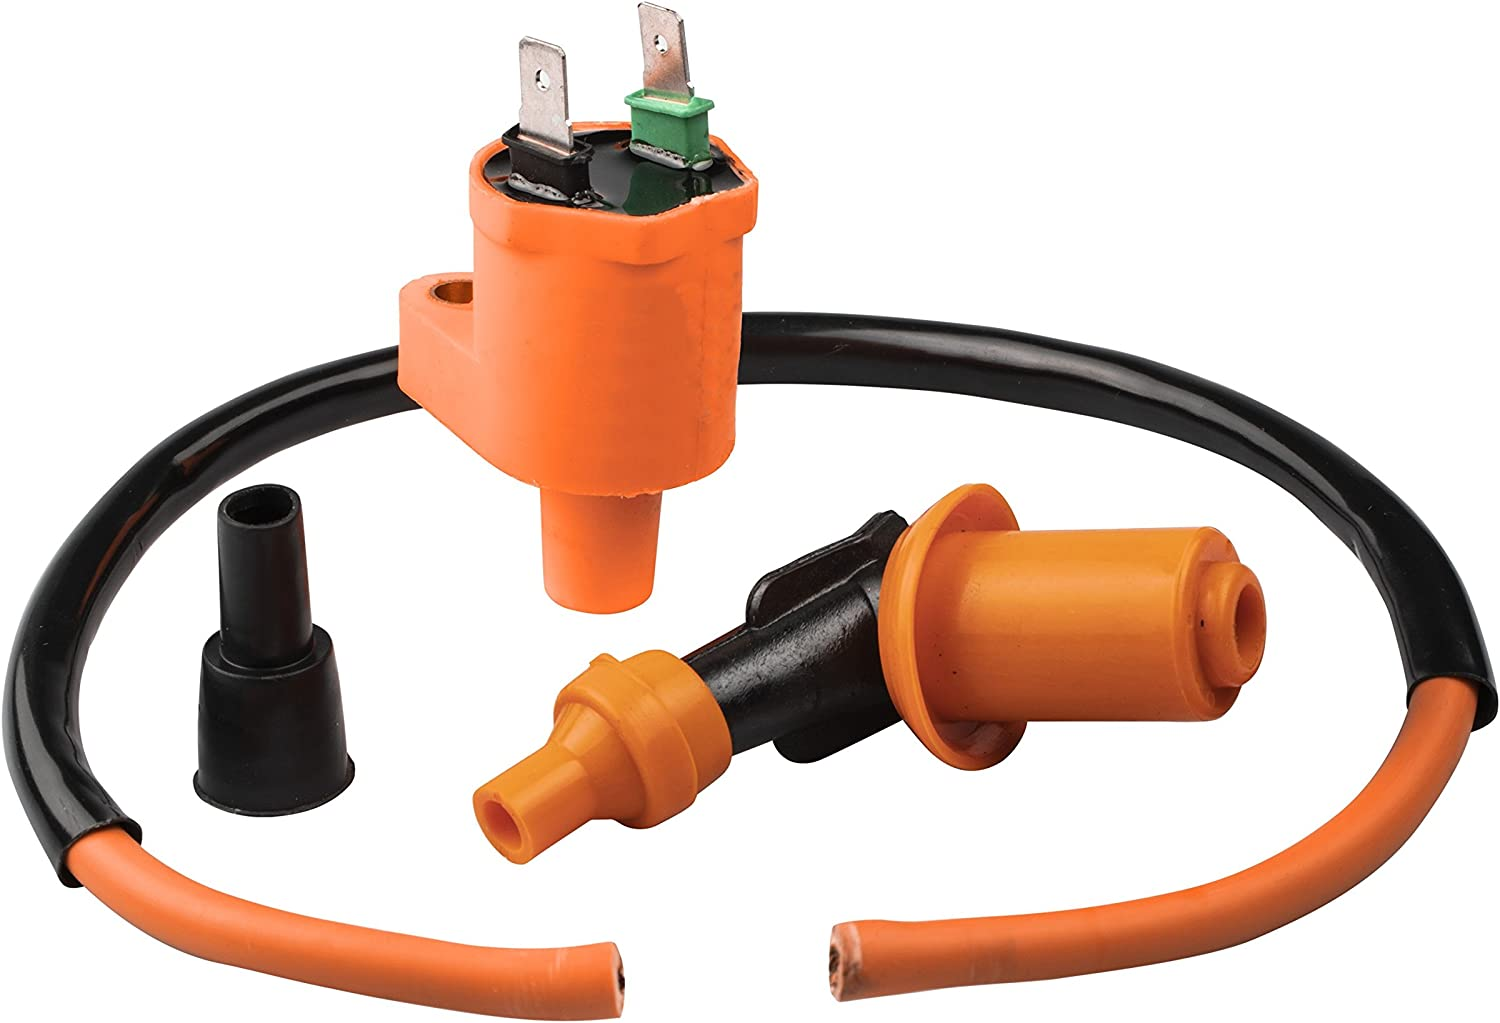 Racing Ignition Coil for Tomberlin Crossfire 150 150R 150cc Go Kart Hot Coil OGB